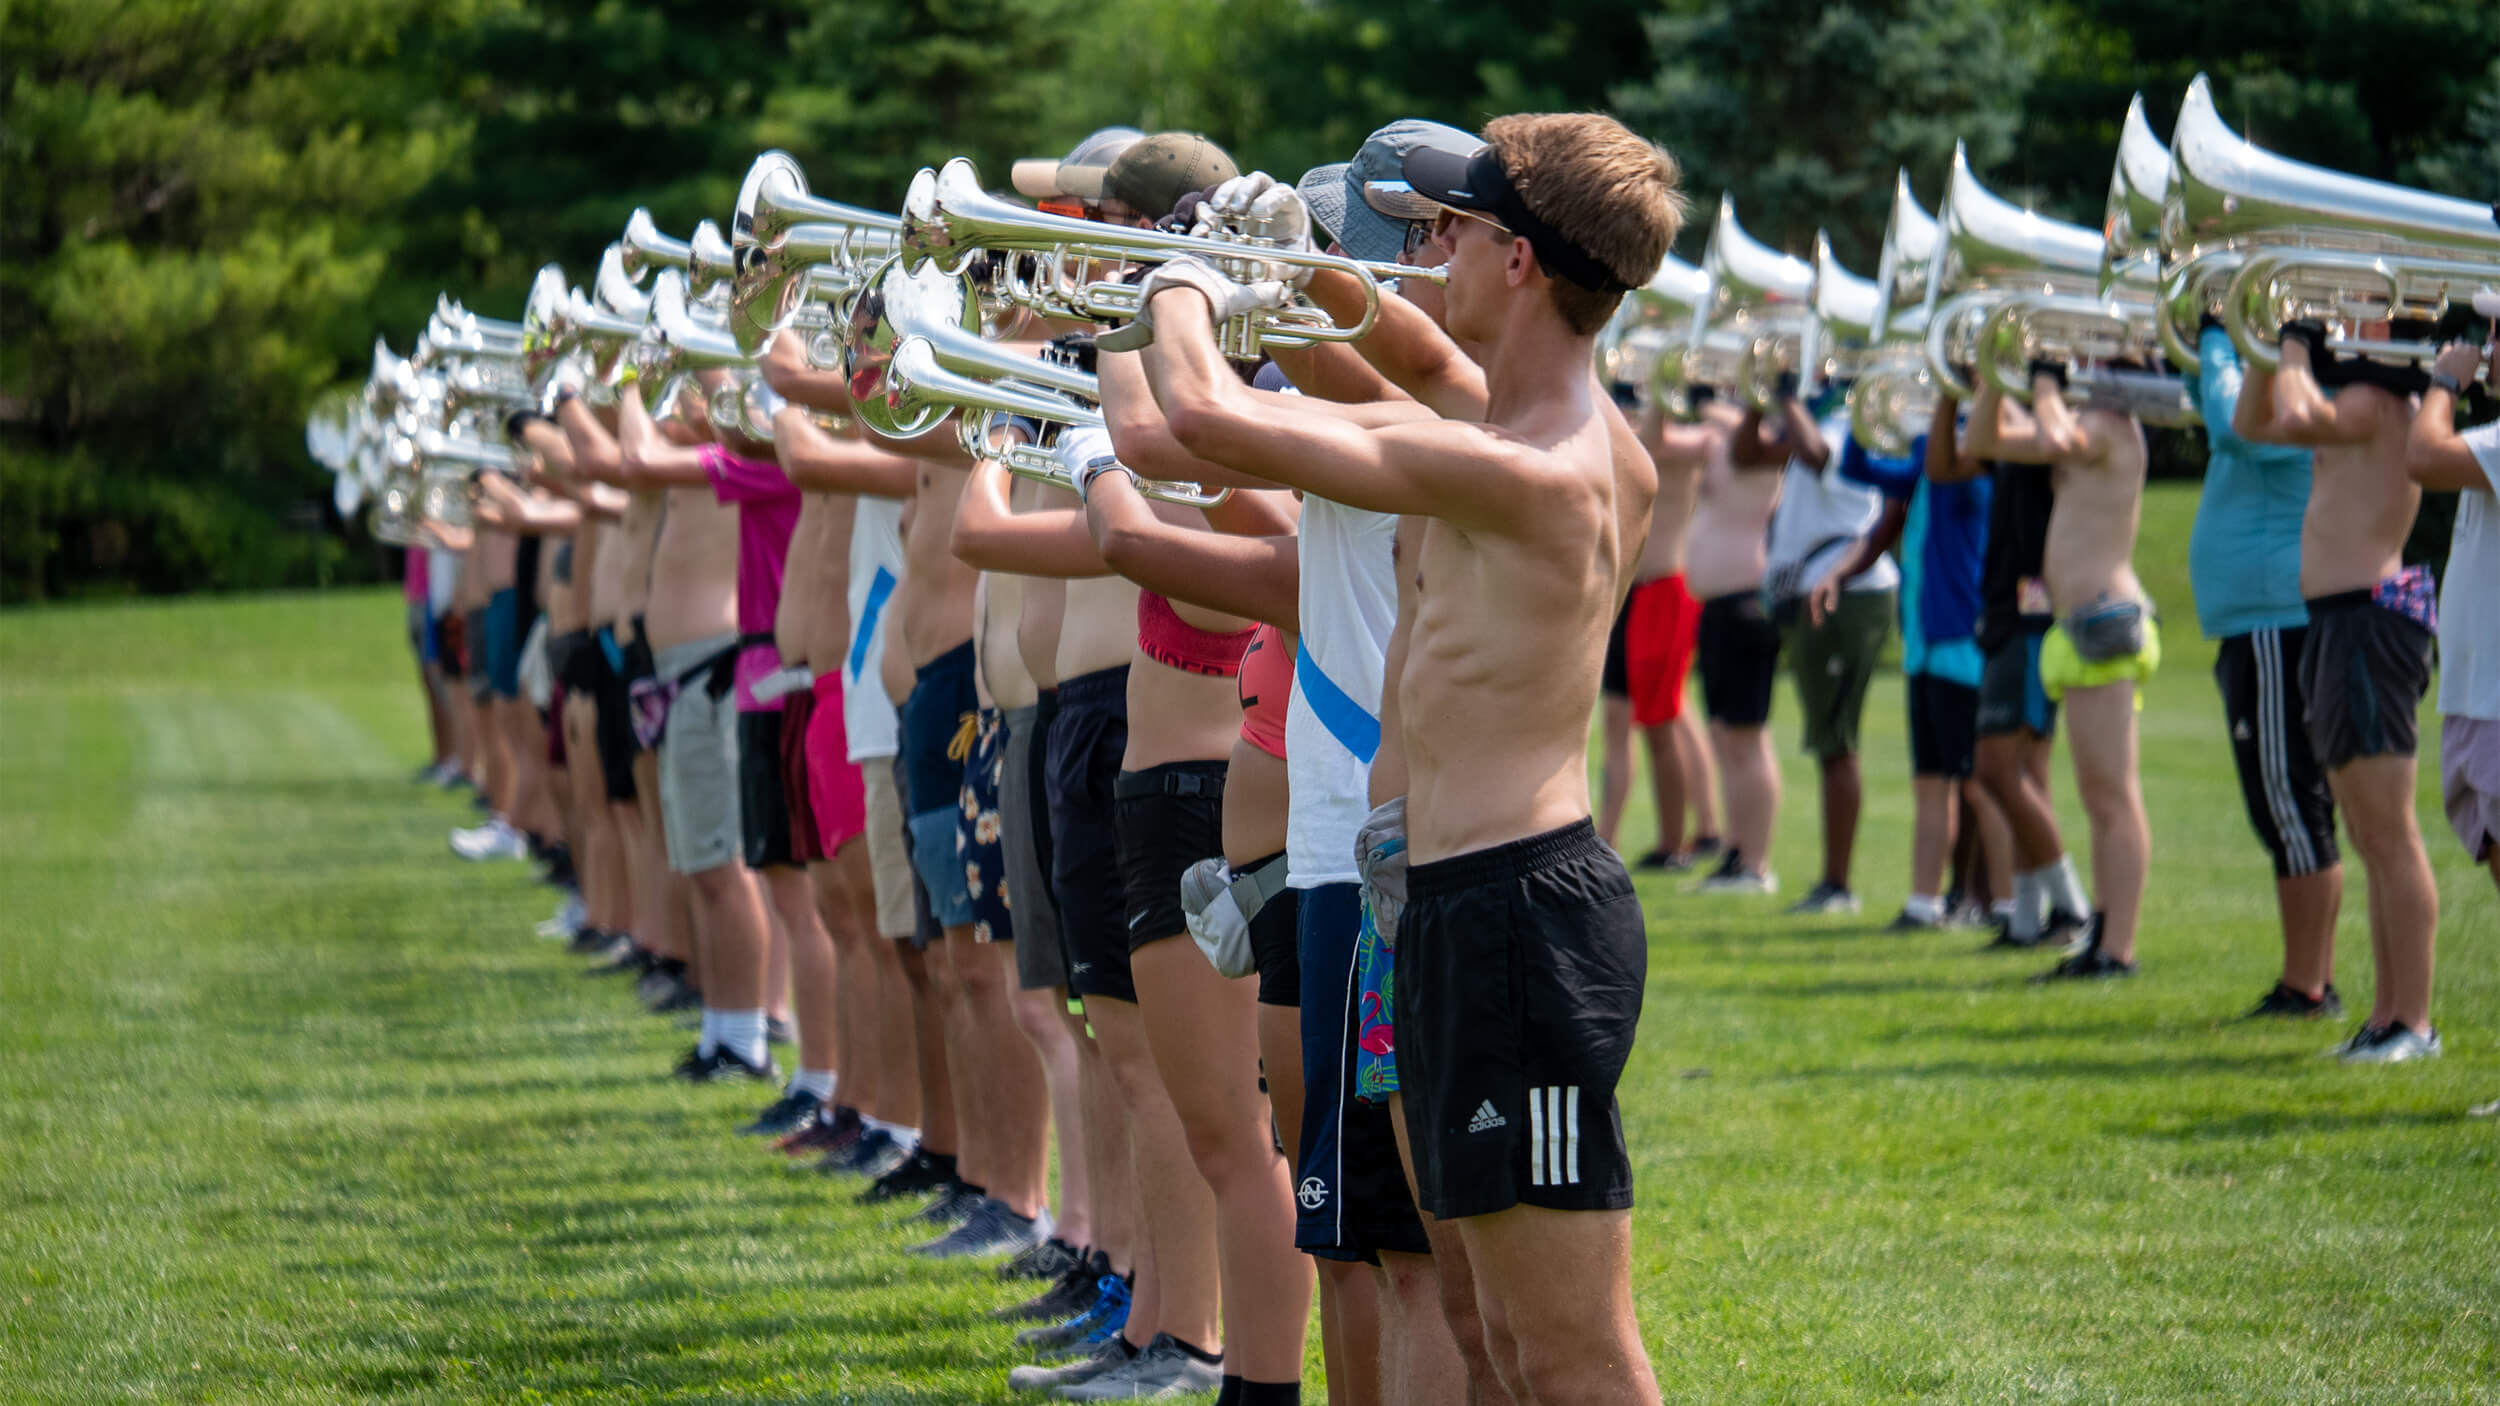 Intermission is over as '21 Bluecoats march into final days of preseason